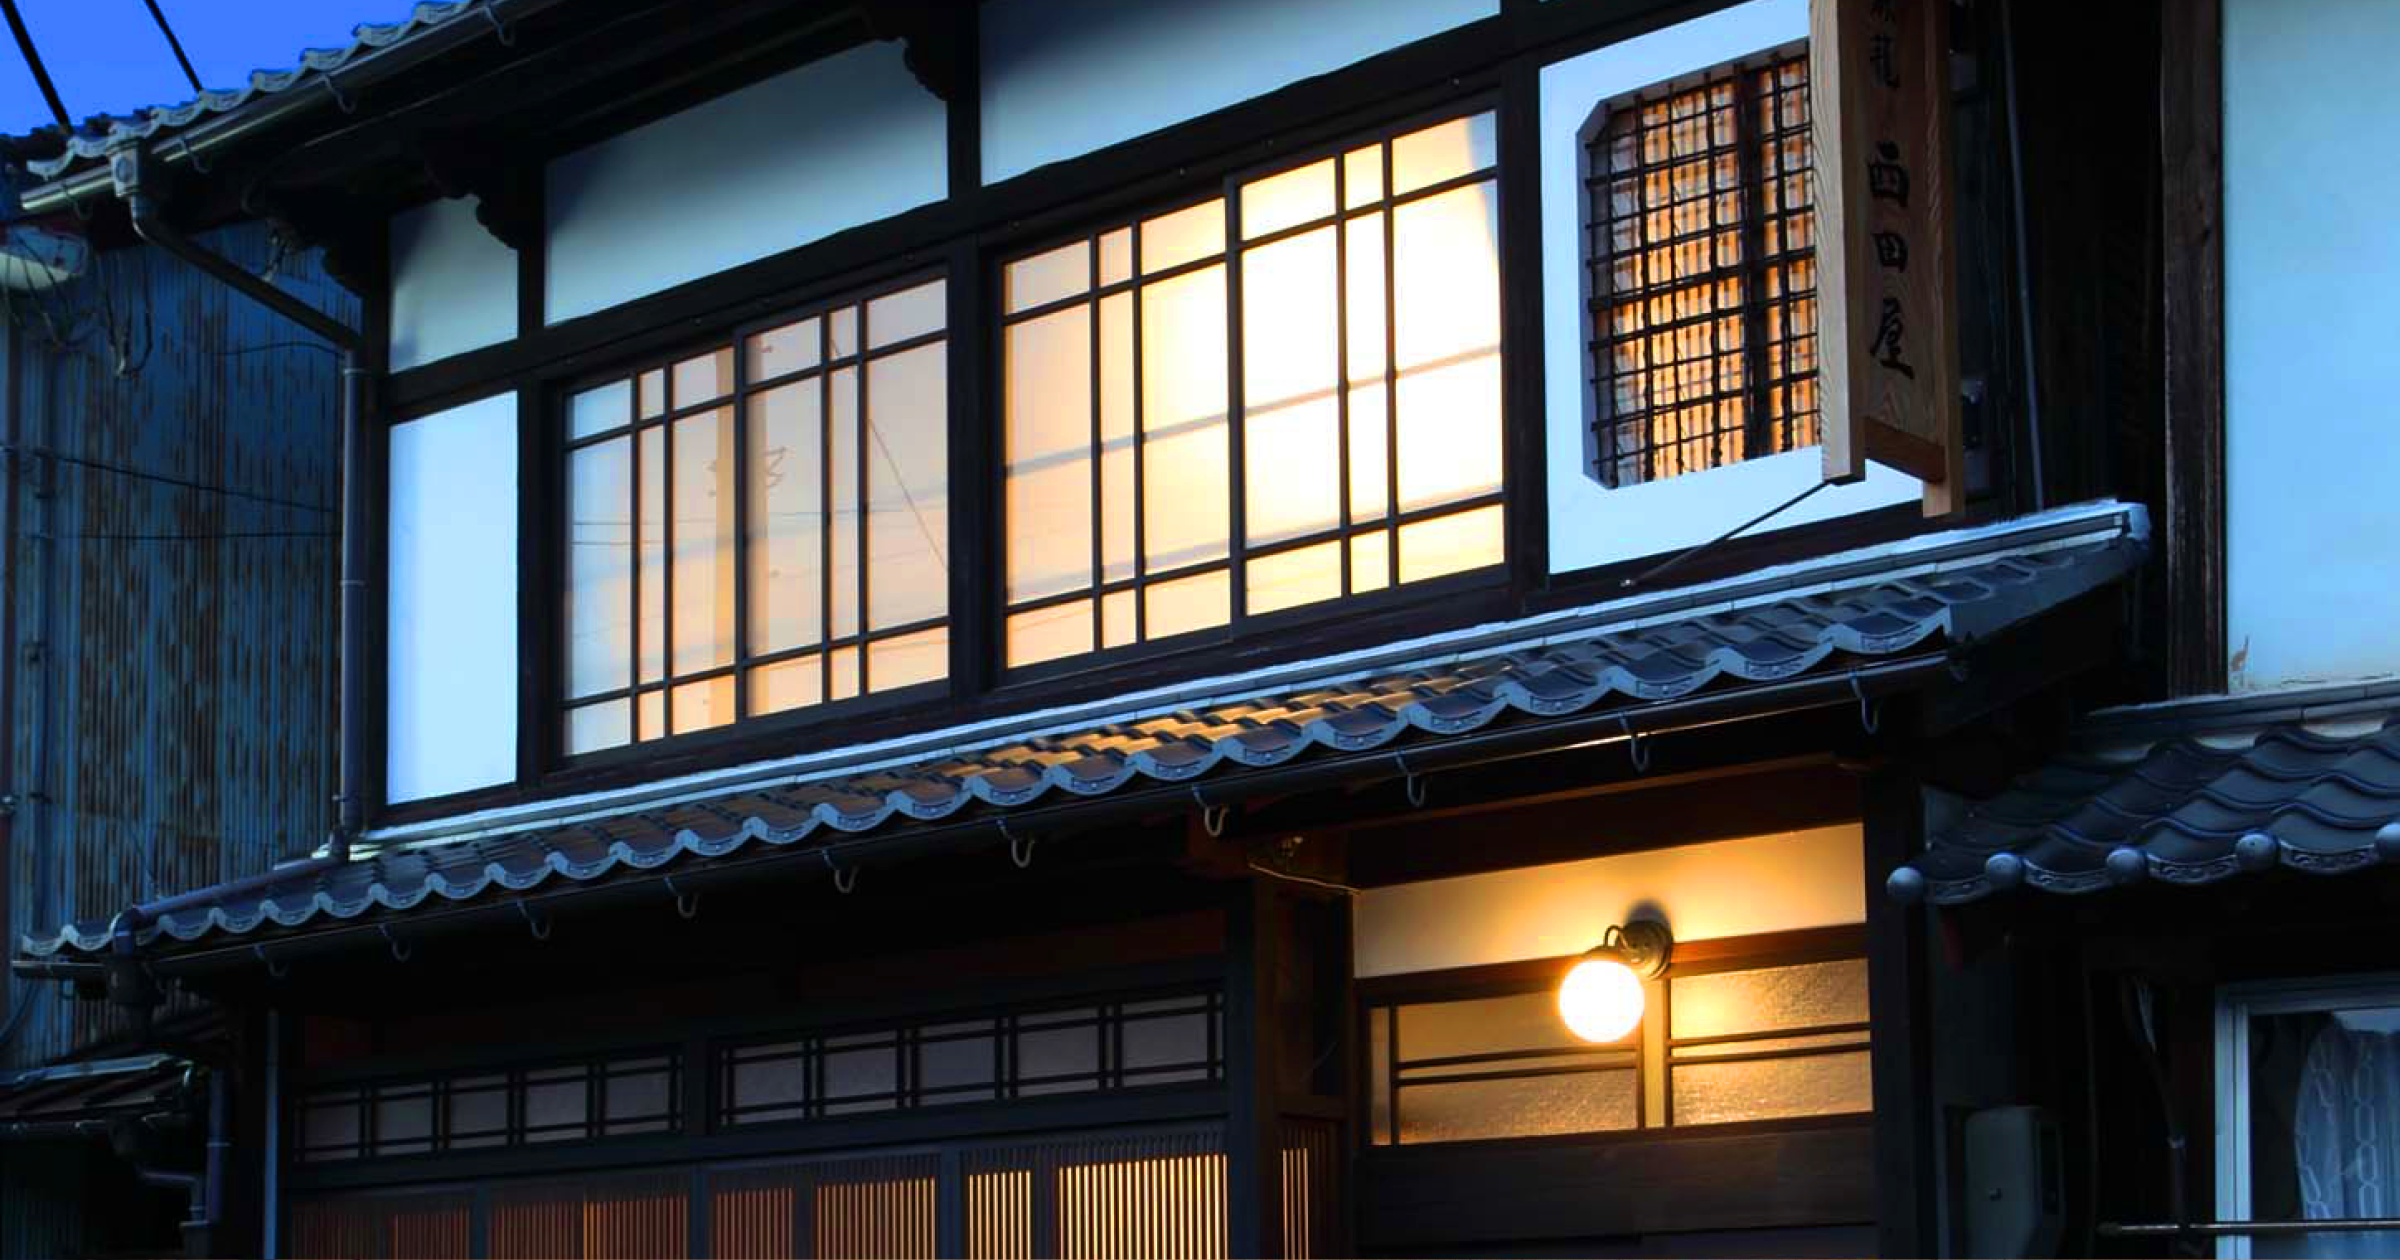 Nishidaya Inn: an accommodation facility built in a traditional architectural style